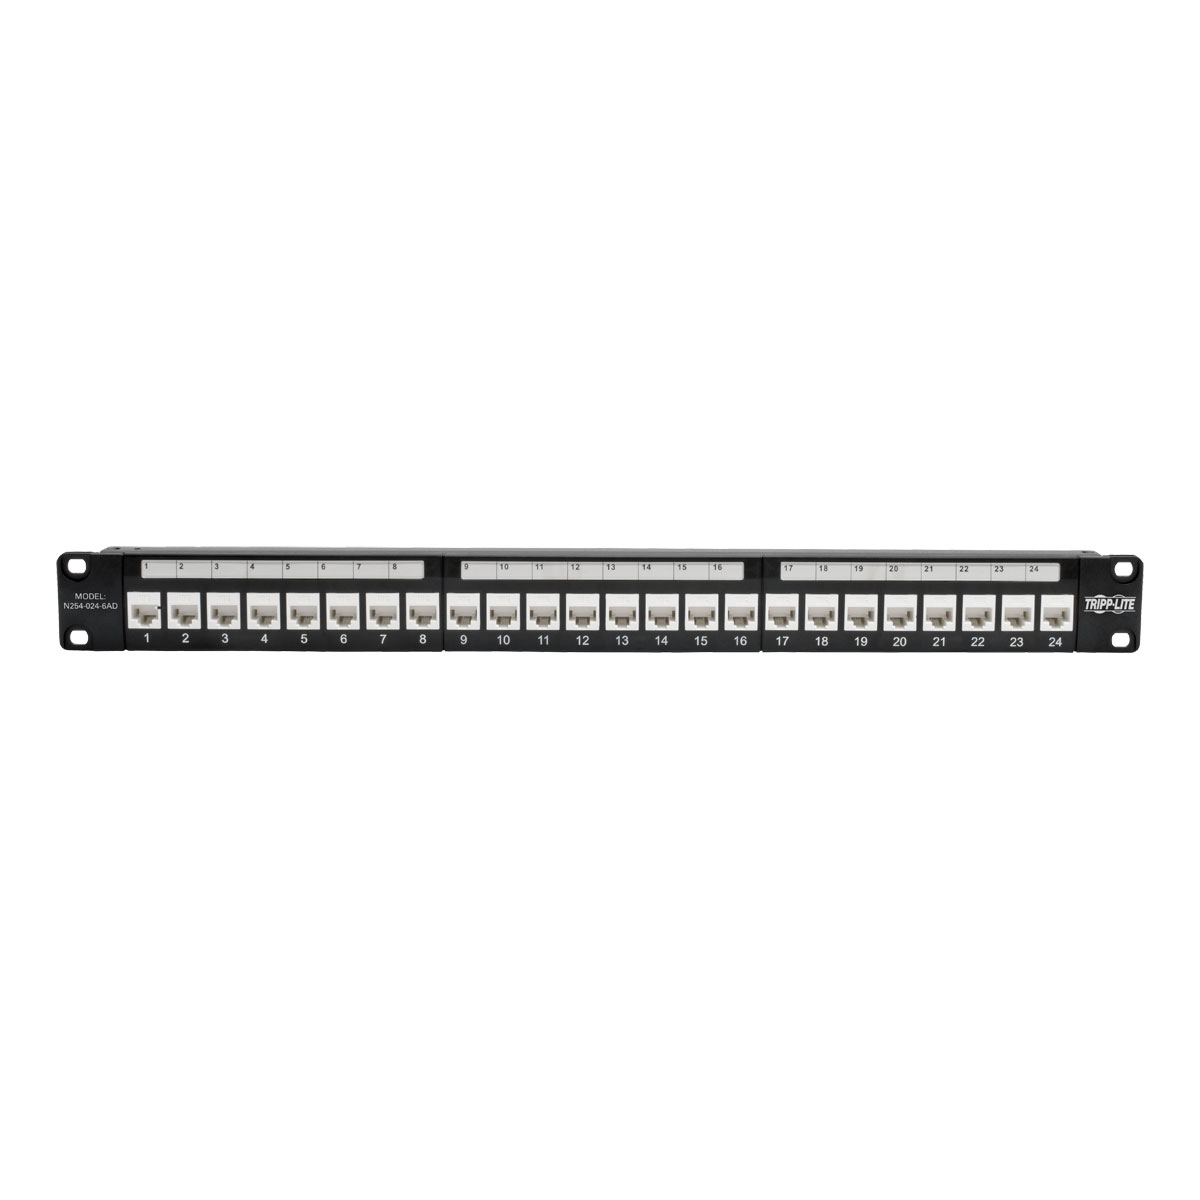 Tripp Lite 24 Port Cat6a Feedthrough Patch Panel W Down Angled Ports 19inch Cat6 Utp T568a T568b Wiring 1ru 110 Termination 1u Taa N254 024 6ad Network Cable Accessories